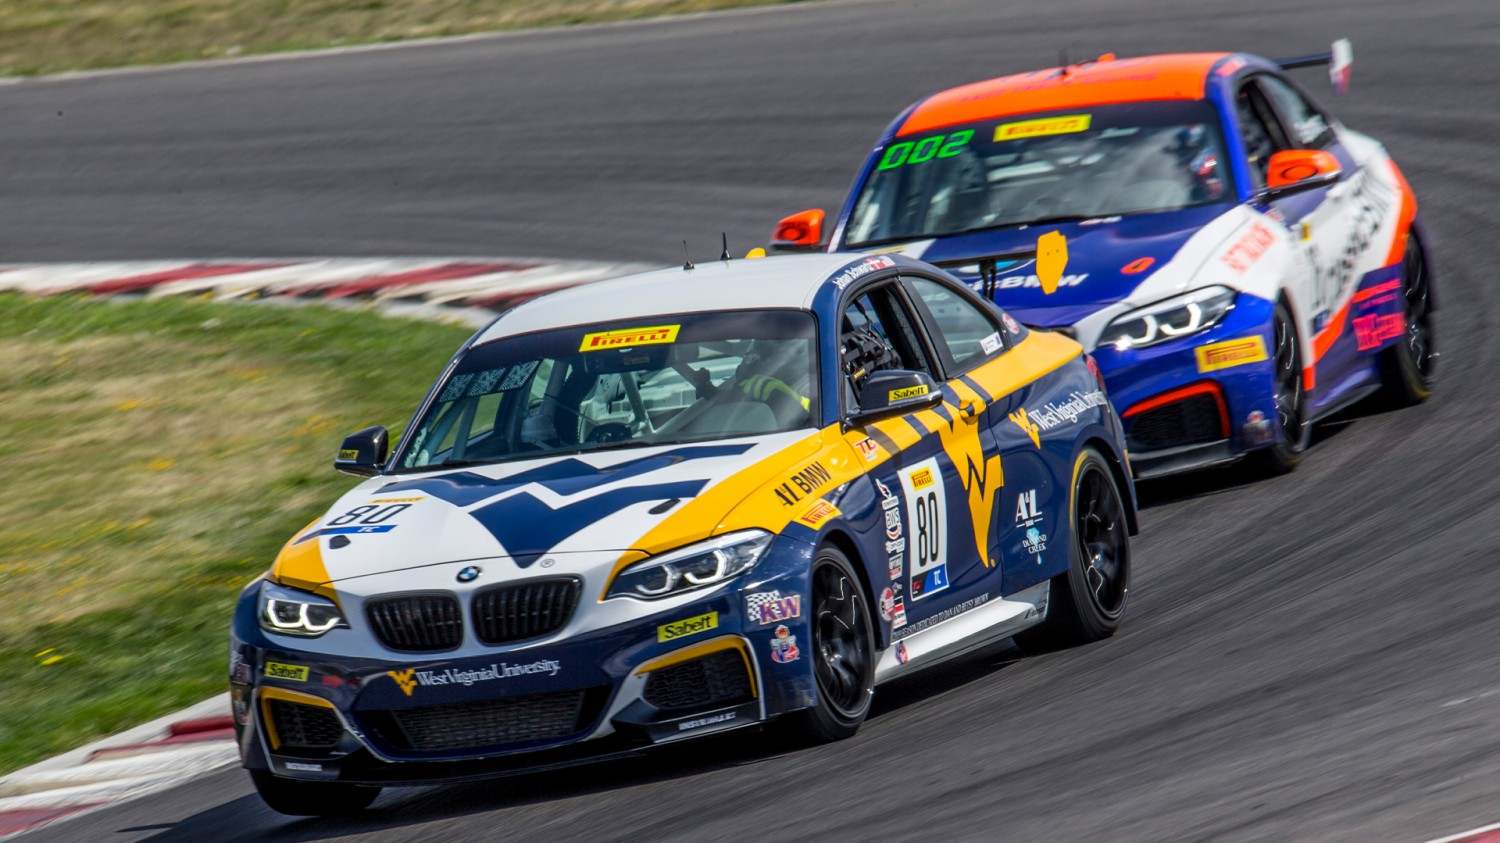 Schwartz Wins Exciting TC America Race at Portland International Raceway